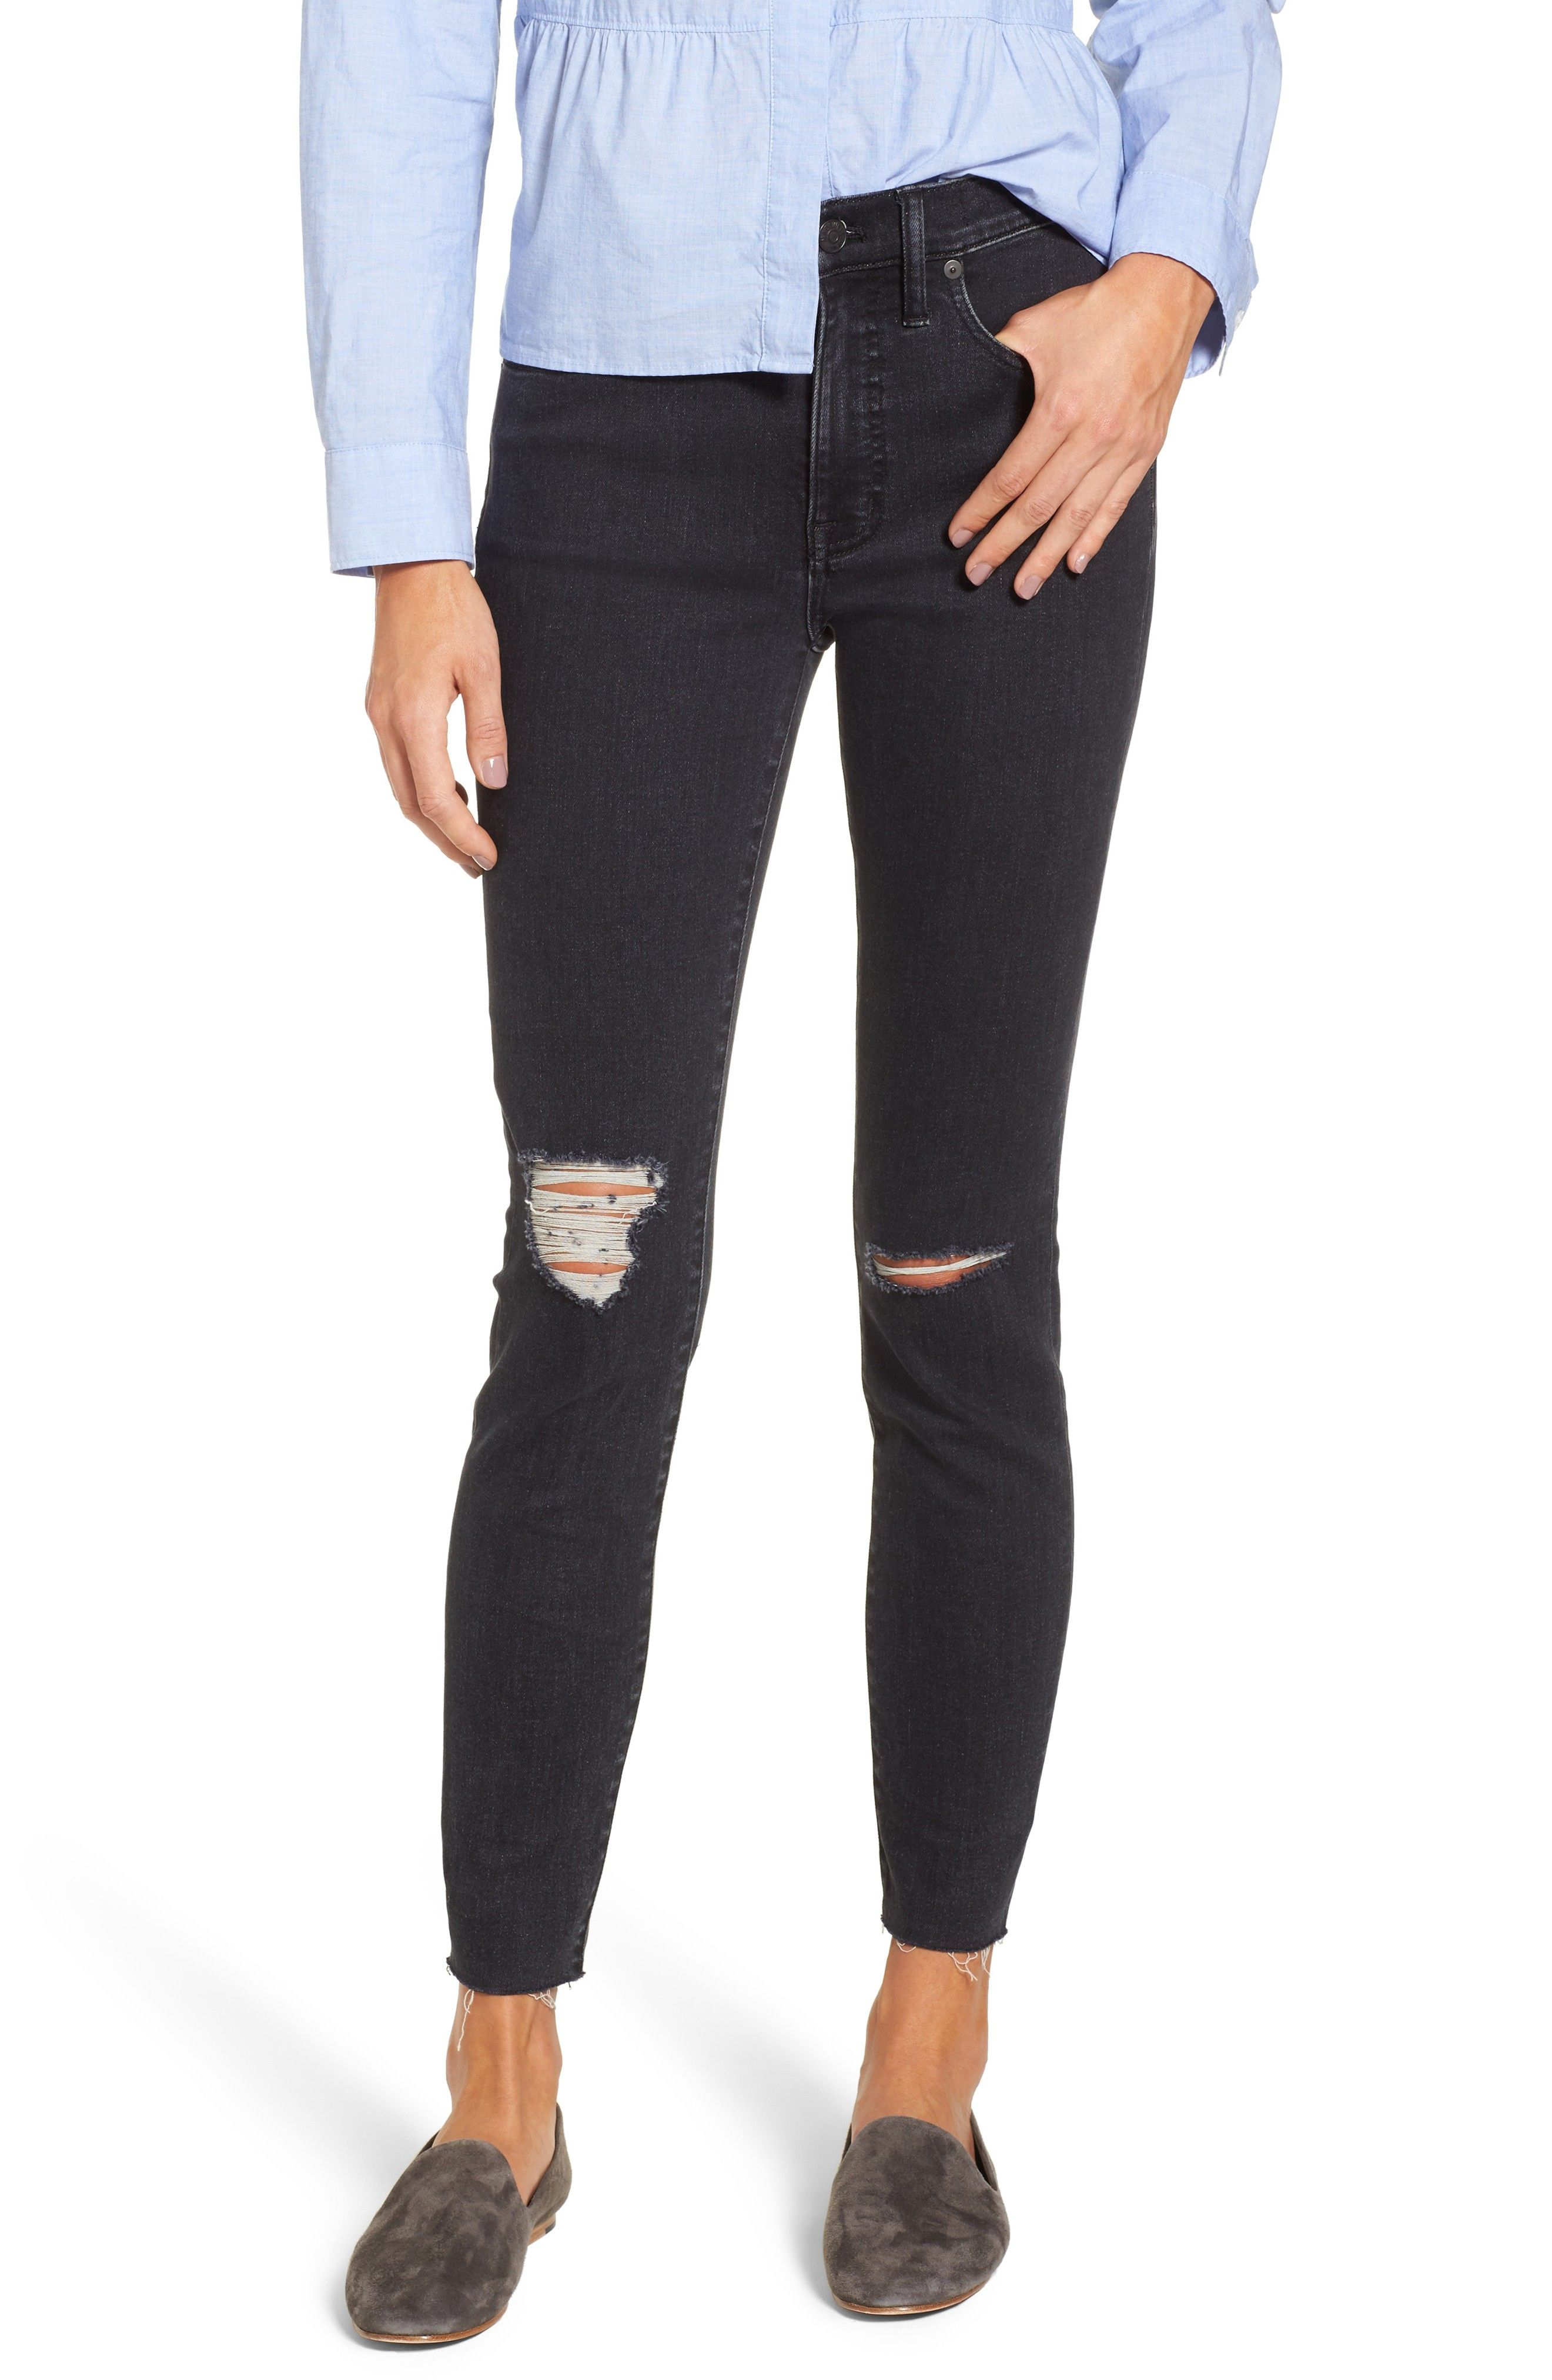 6435a43fa7f you honestly can never go wrong with madewell denim. it's one of their  specialties, so you know the quality will always be amazing. i love these  black ...